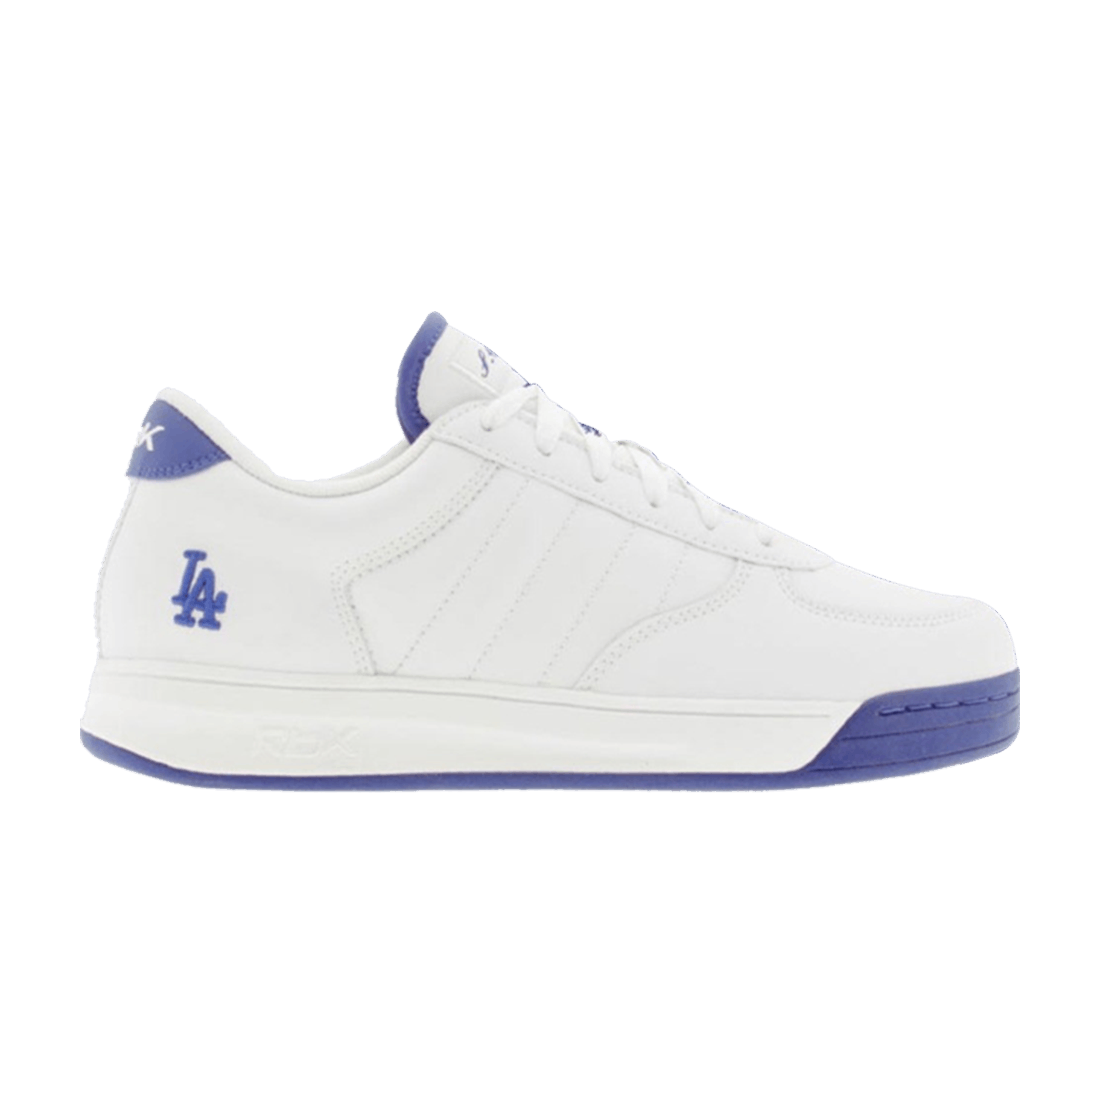 734ecf52087 Reebok Big Kids S Carter Bball Low LA Dodgers - Reebok - 74 139629 ...